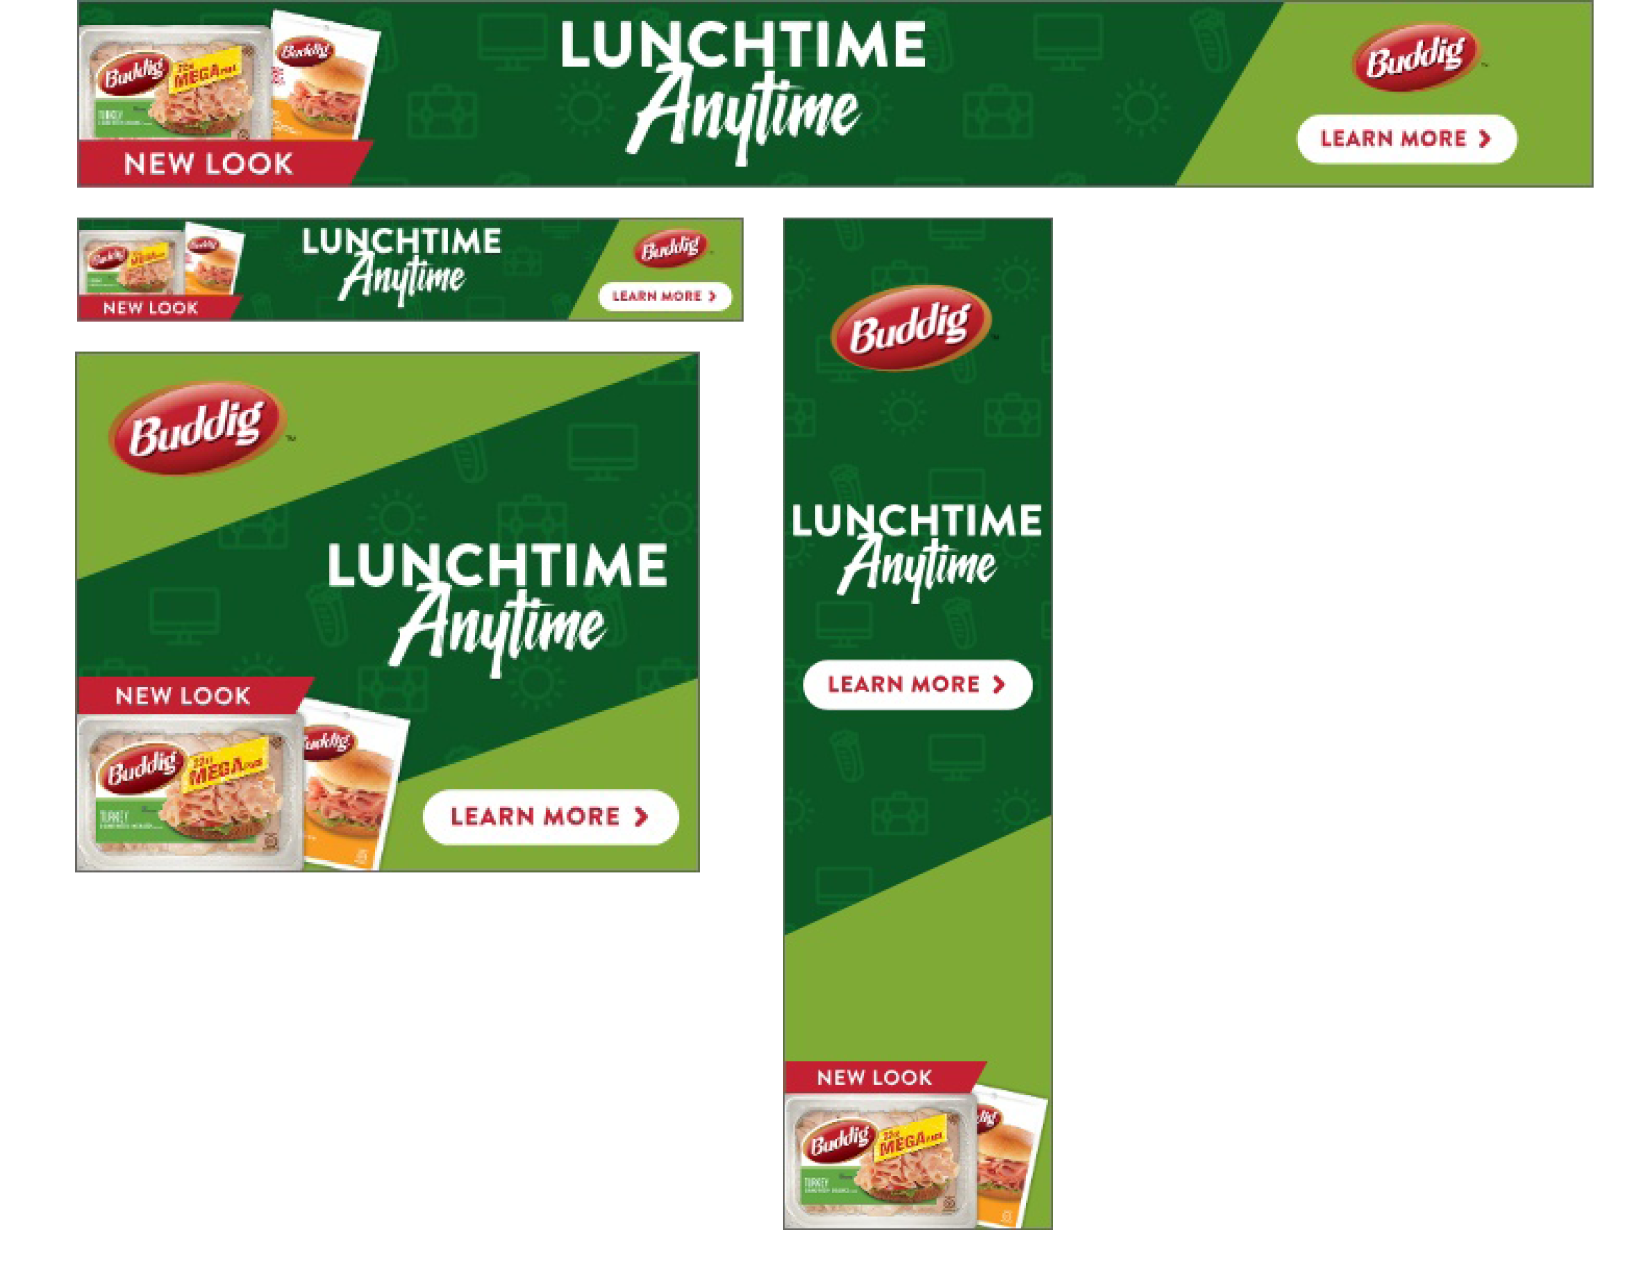 Daytime A banners - 728x90, 320x50, 300x250, 160x600